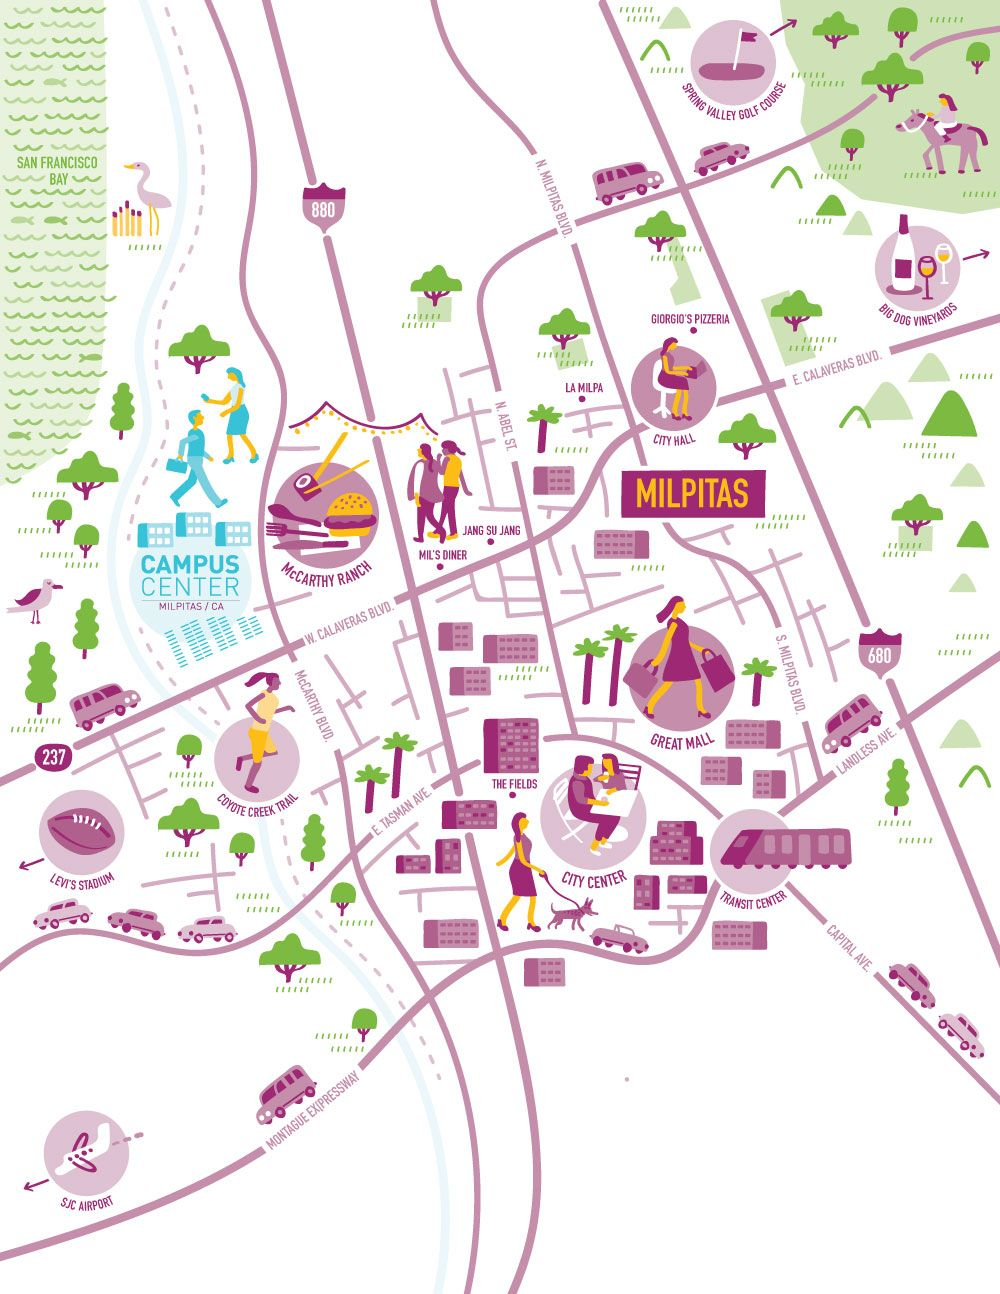 Illustrated map of Milpitas, California by Nate Padavick for Campus ...